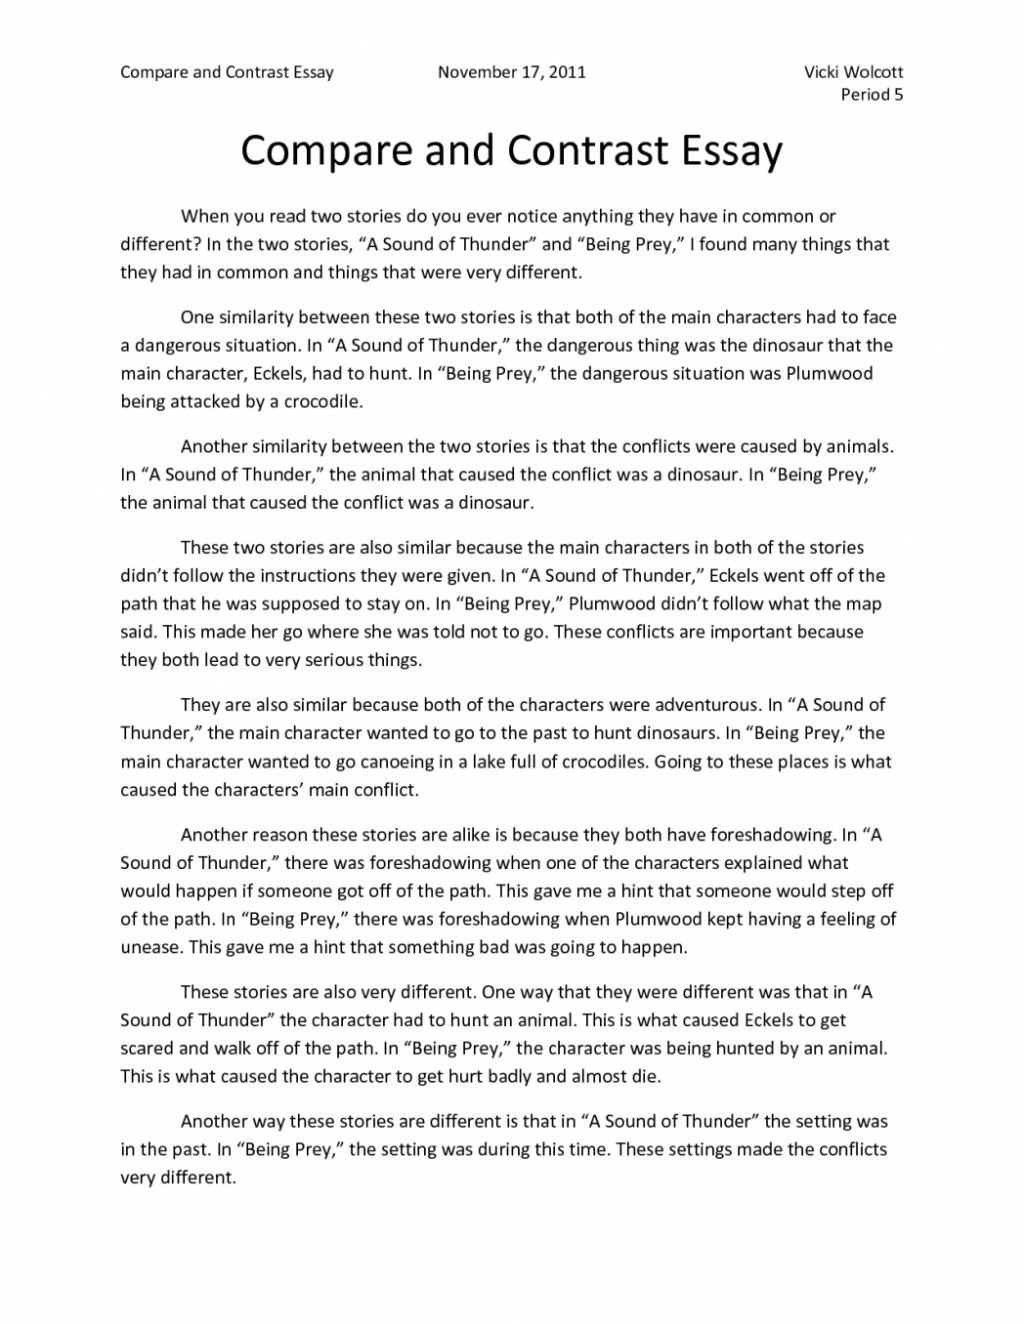 014 Conclusion For Compare And Contrast Essay Writing Comparison Argumentative Example How To Write An Samples Awesome A Paragraph Examples Large